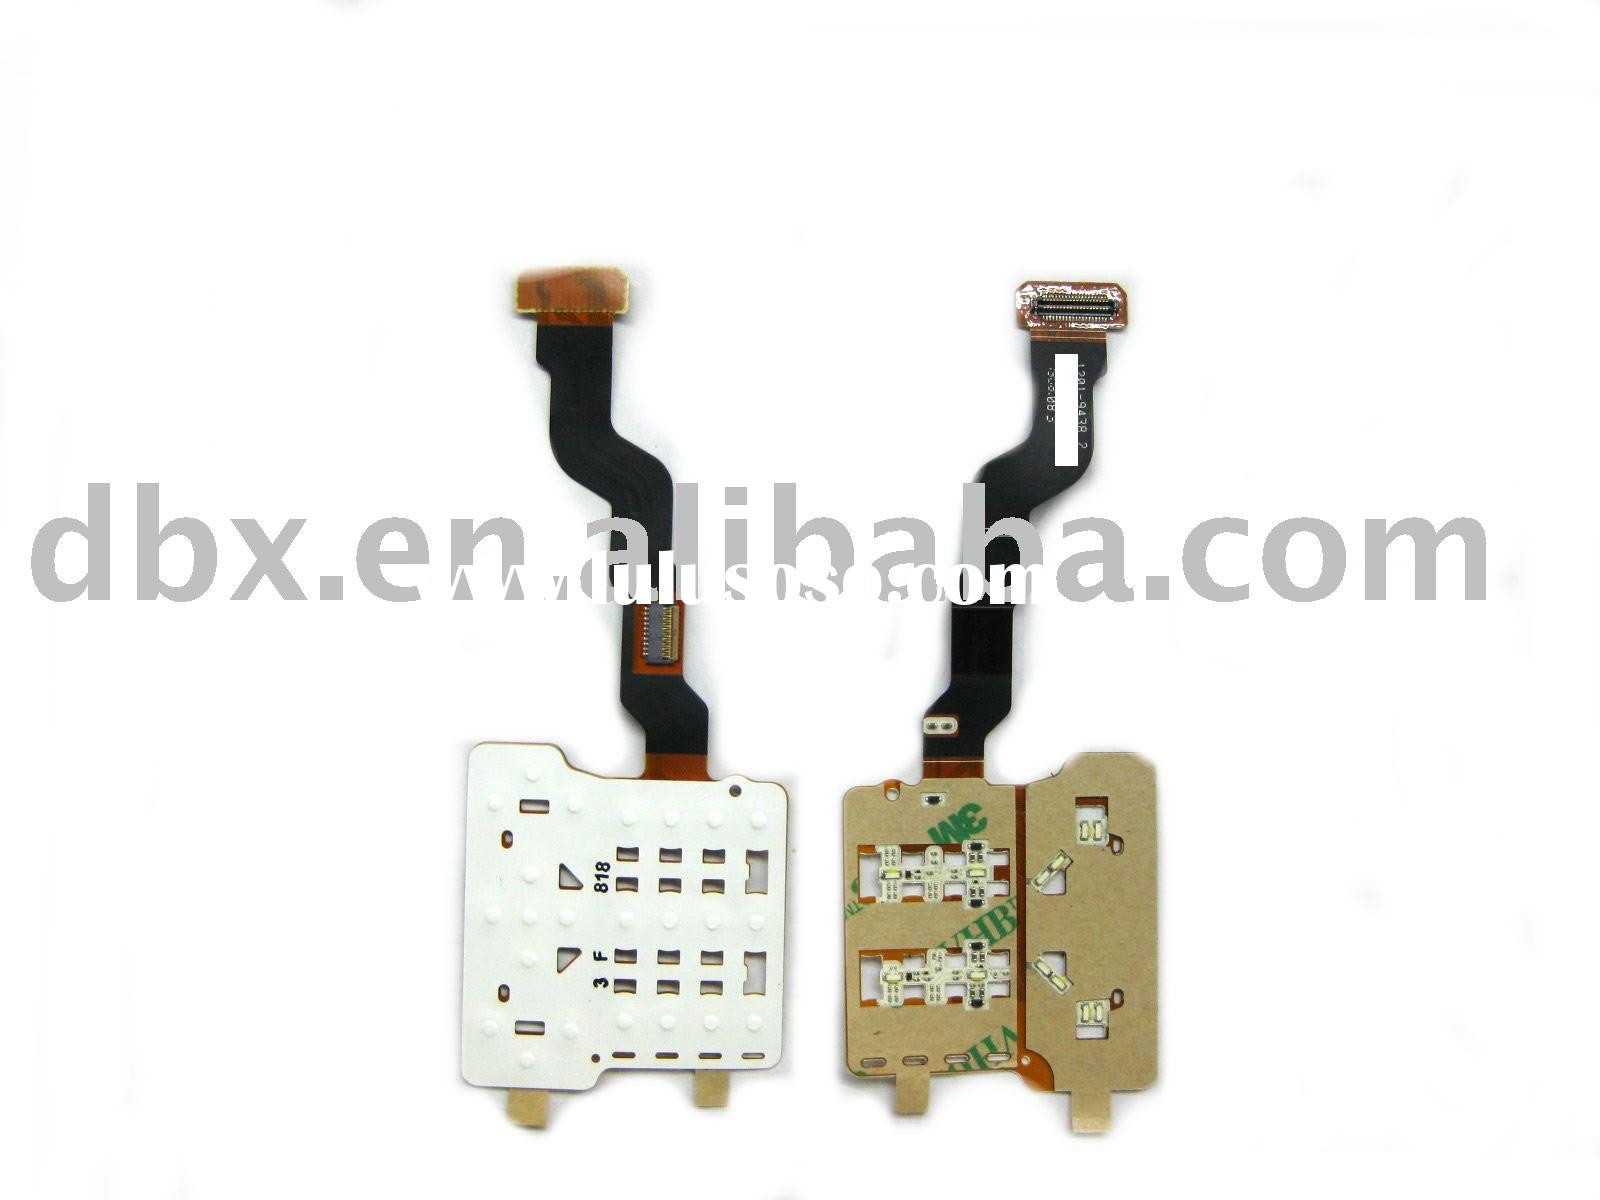 Mobile phone flex cable for Sony Ericsson C902 keypad board flex